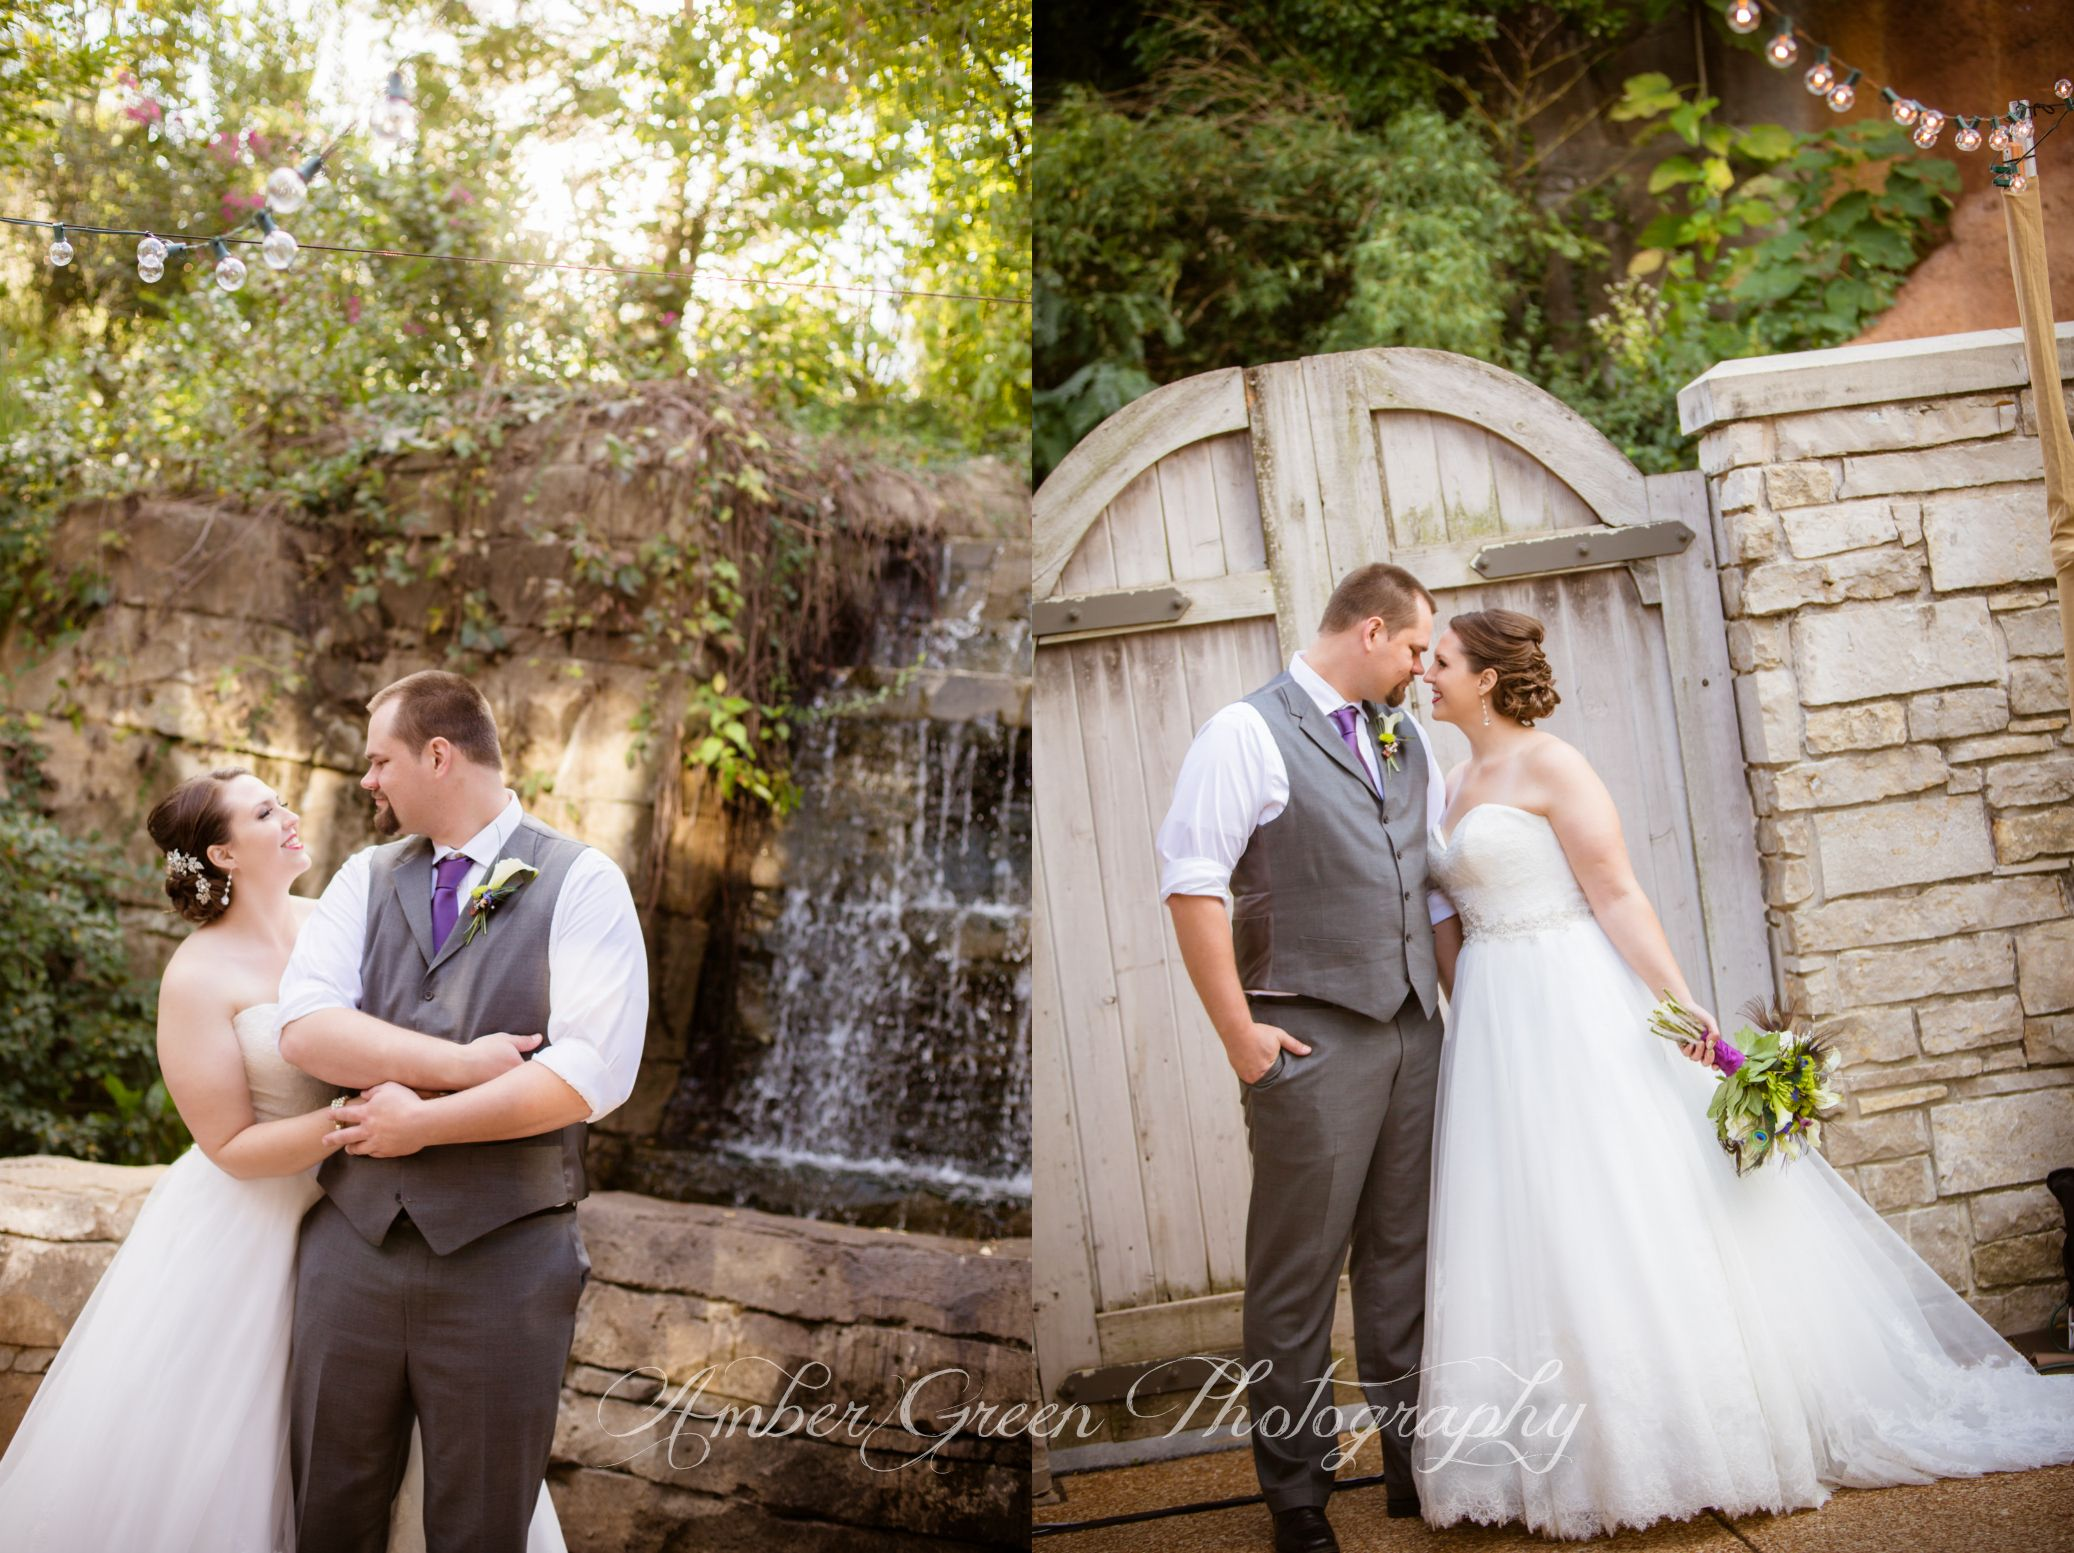 Wedding Photography St Louis St Louis zoo wedding